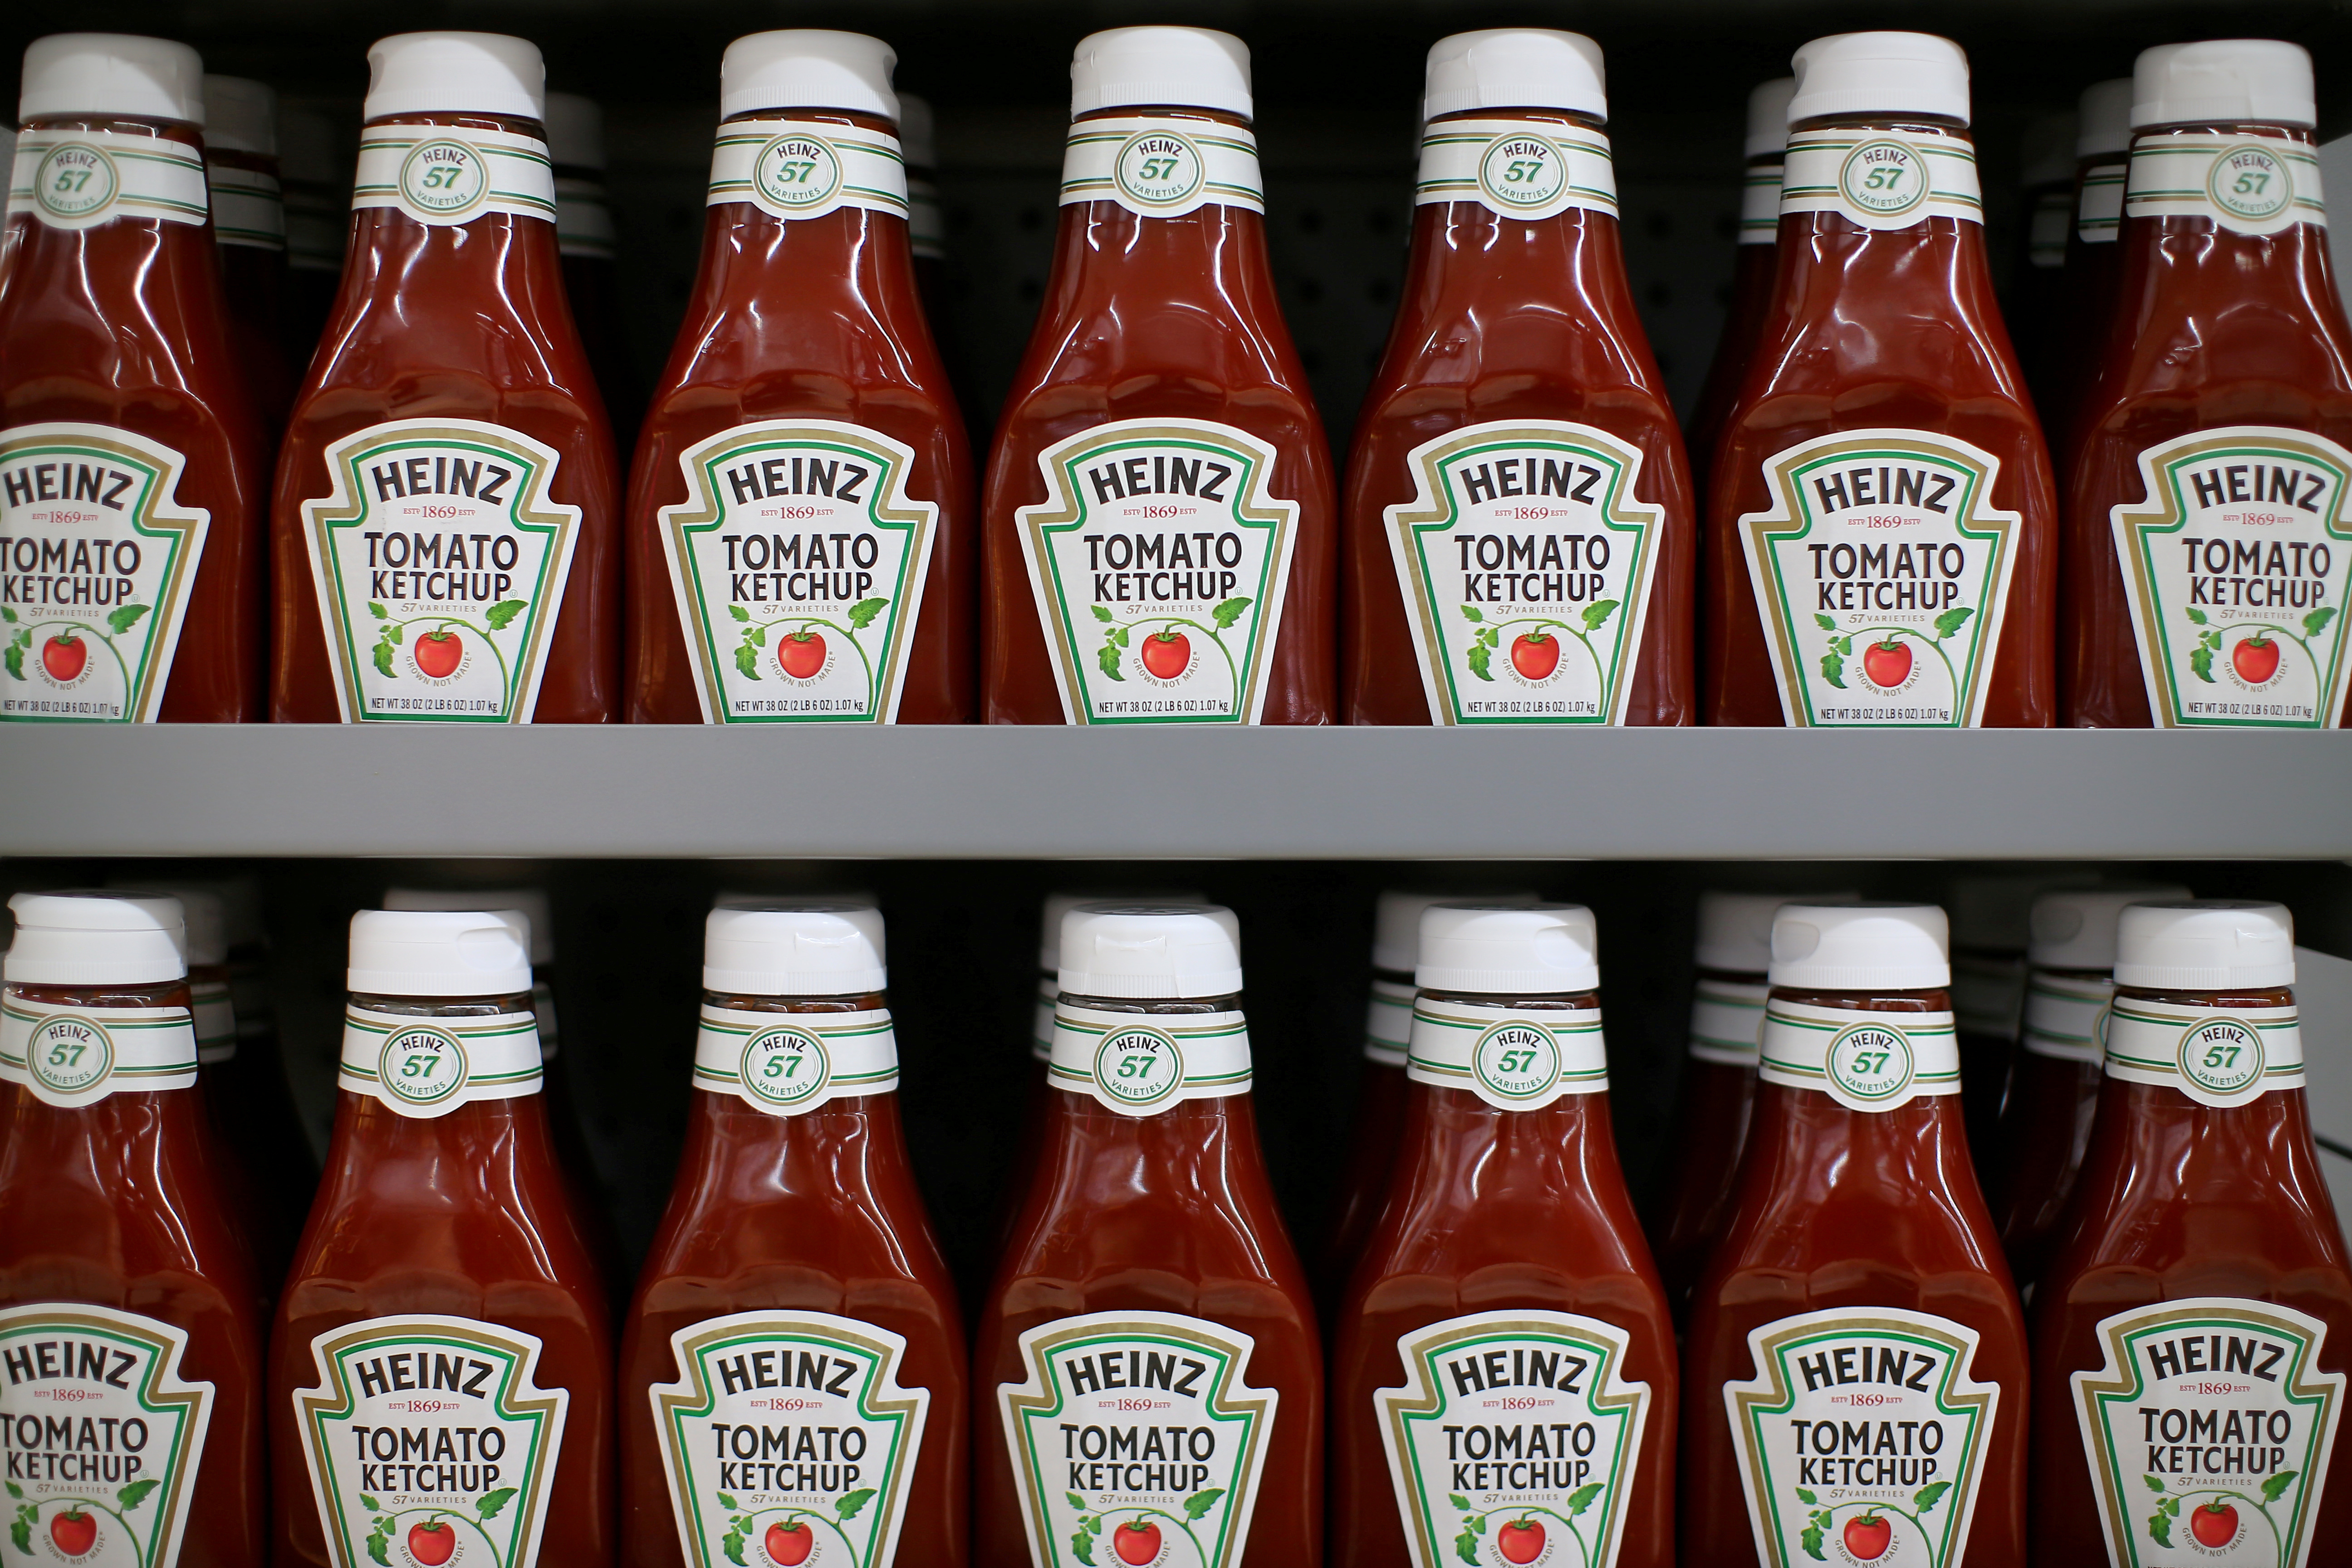 Heinz tomato ketchup is show on display during a preview of a new Walmart Super Center prior to its opening in Compton, California, U.S., January 10, 2017.  REUTERS/Mike Blake